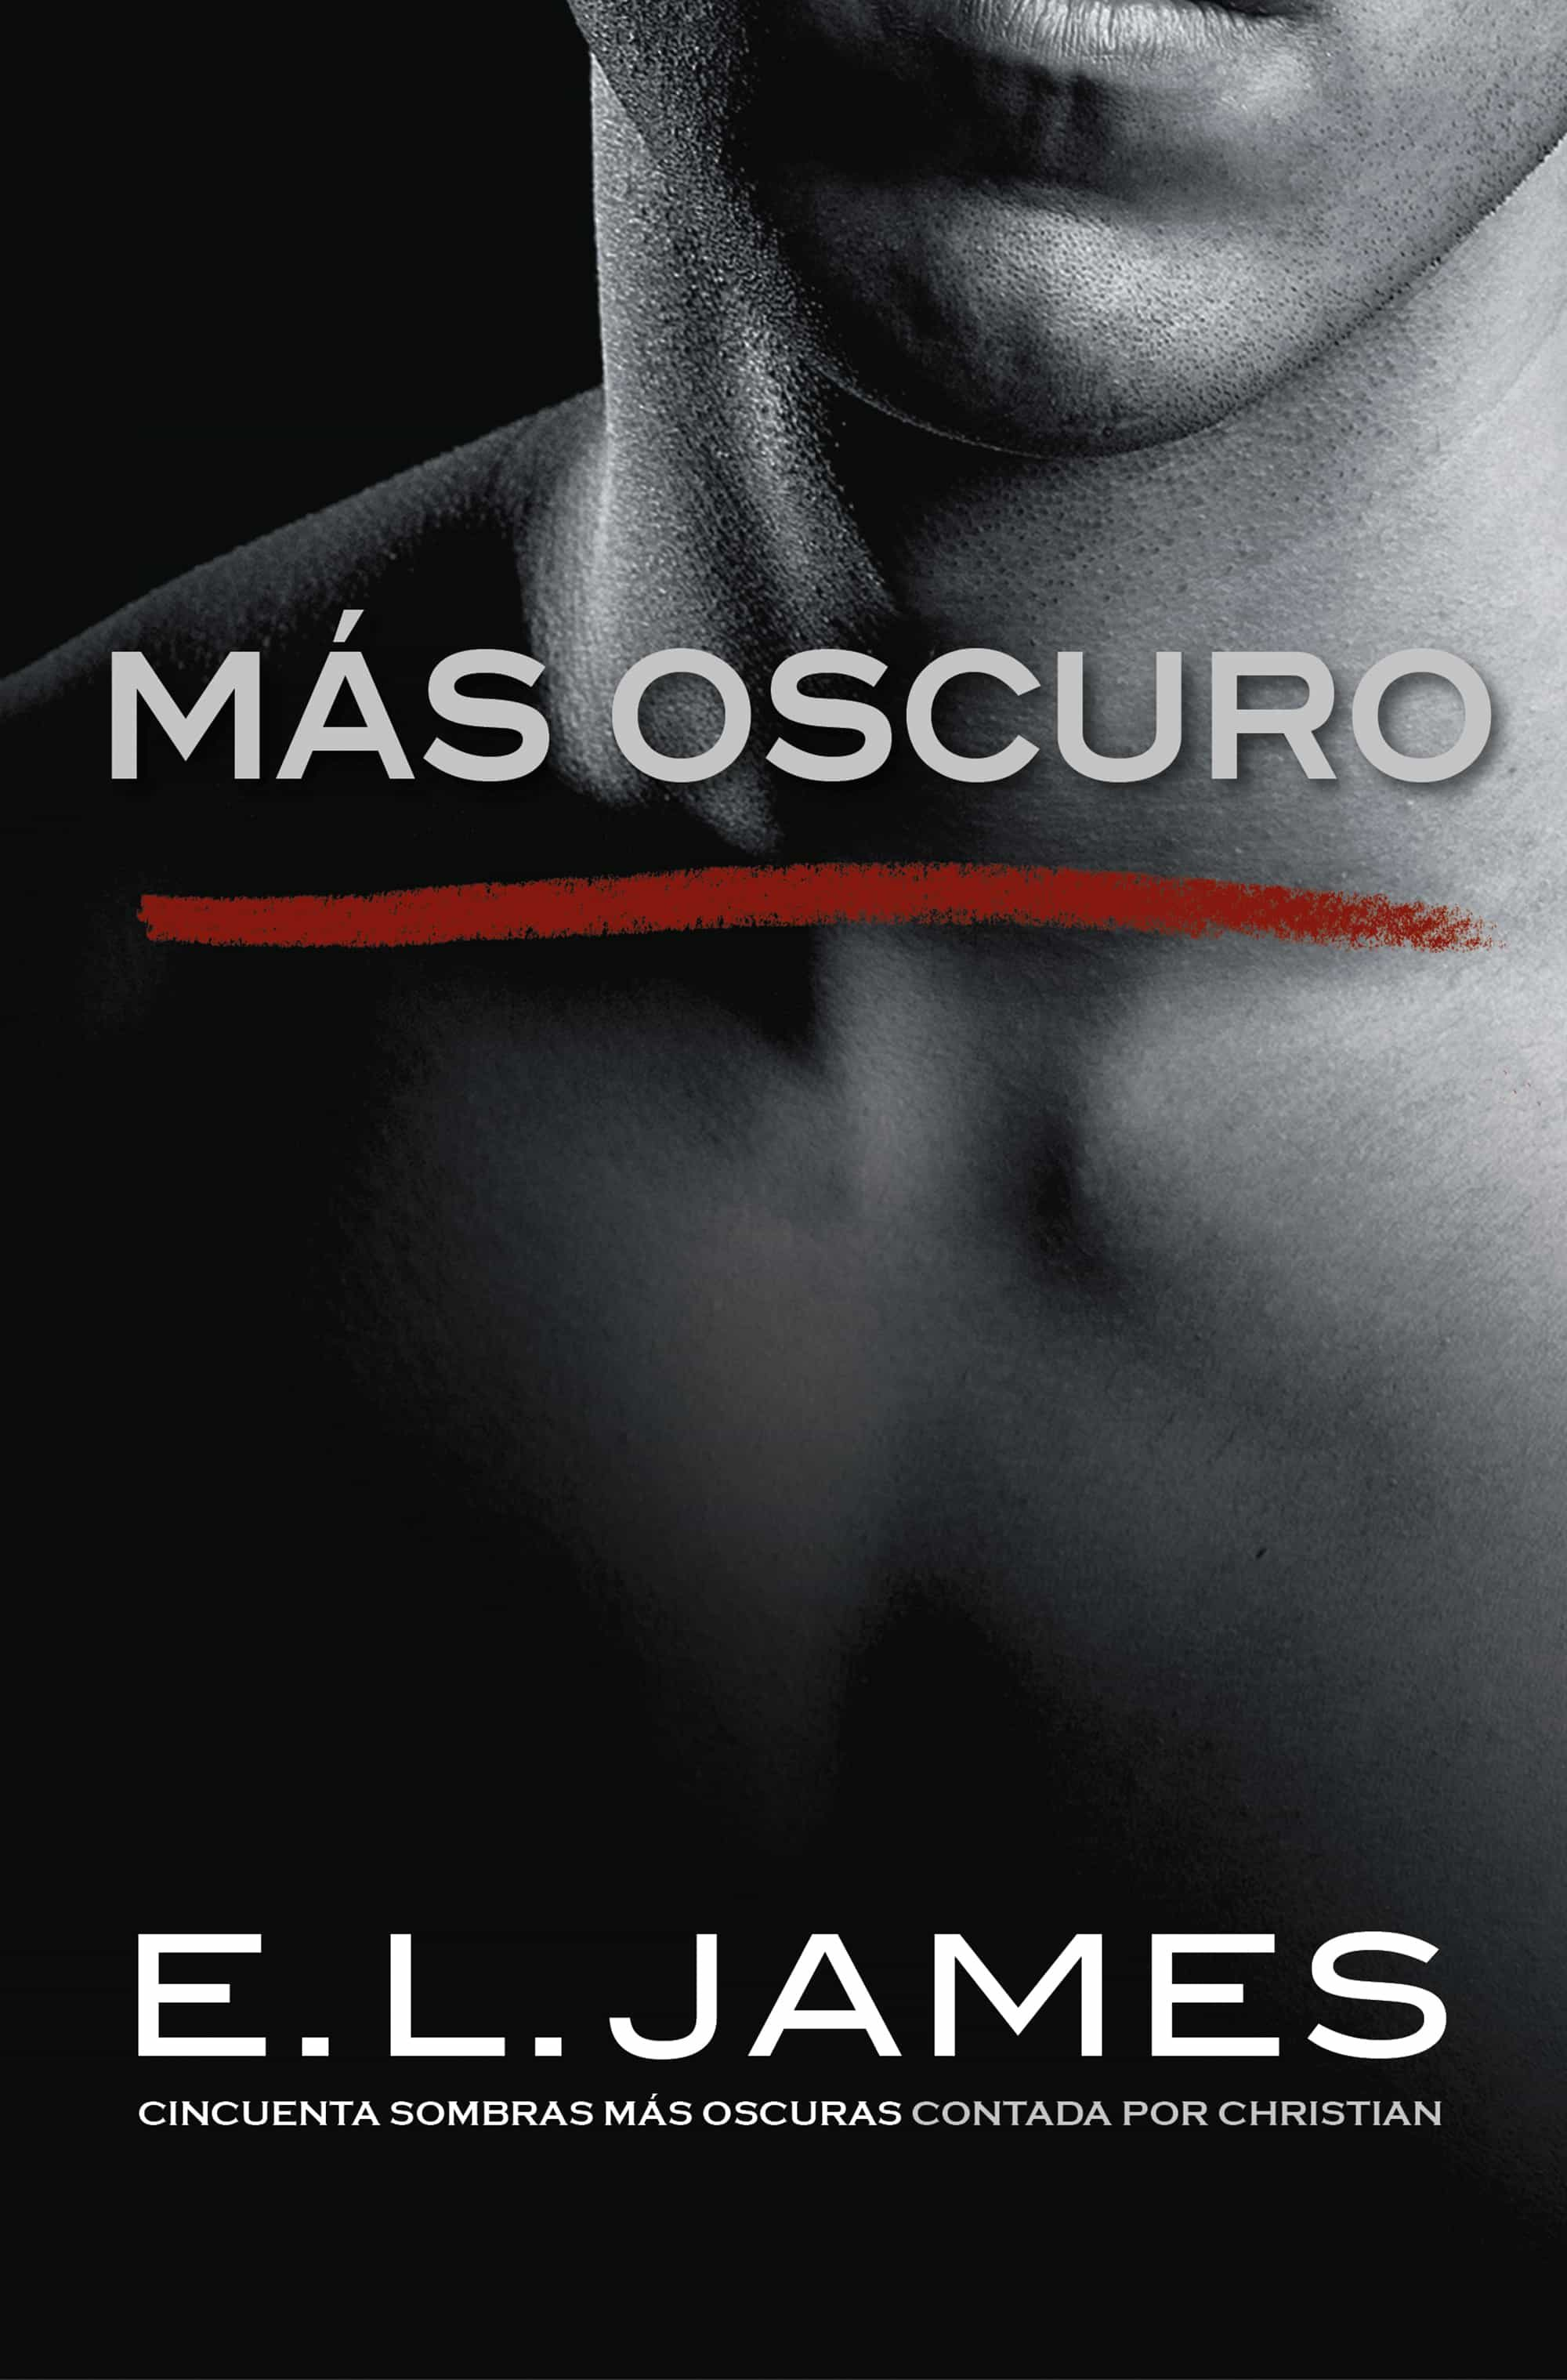 Grey Libro Pdf MÁs Oscuro Cincuenta Sombras Contada Por Christian Grey 2 Ebook E L James Descargar Libro Pdf O Epub 9788425356230